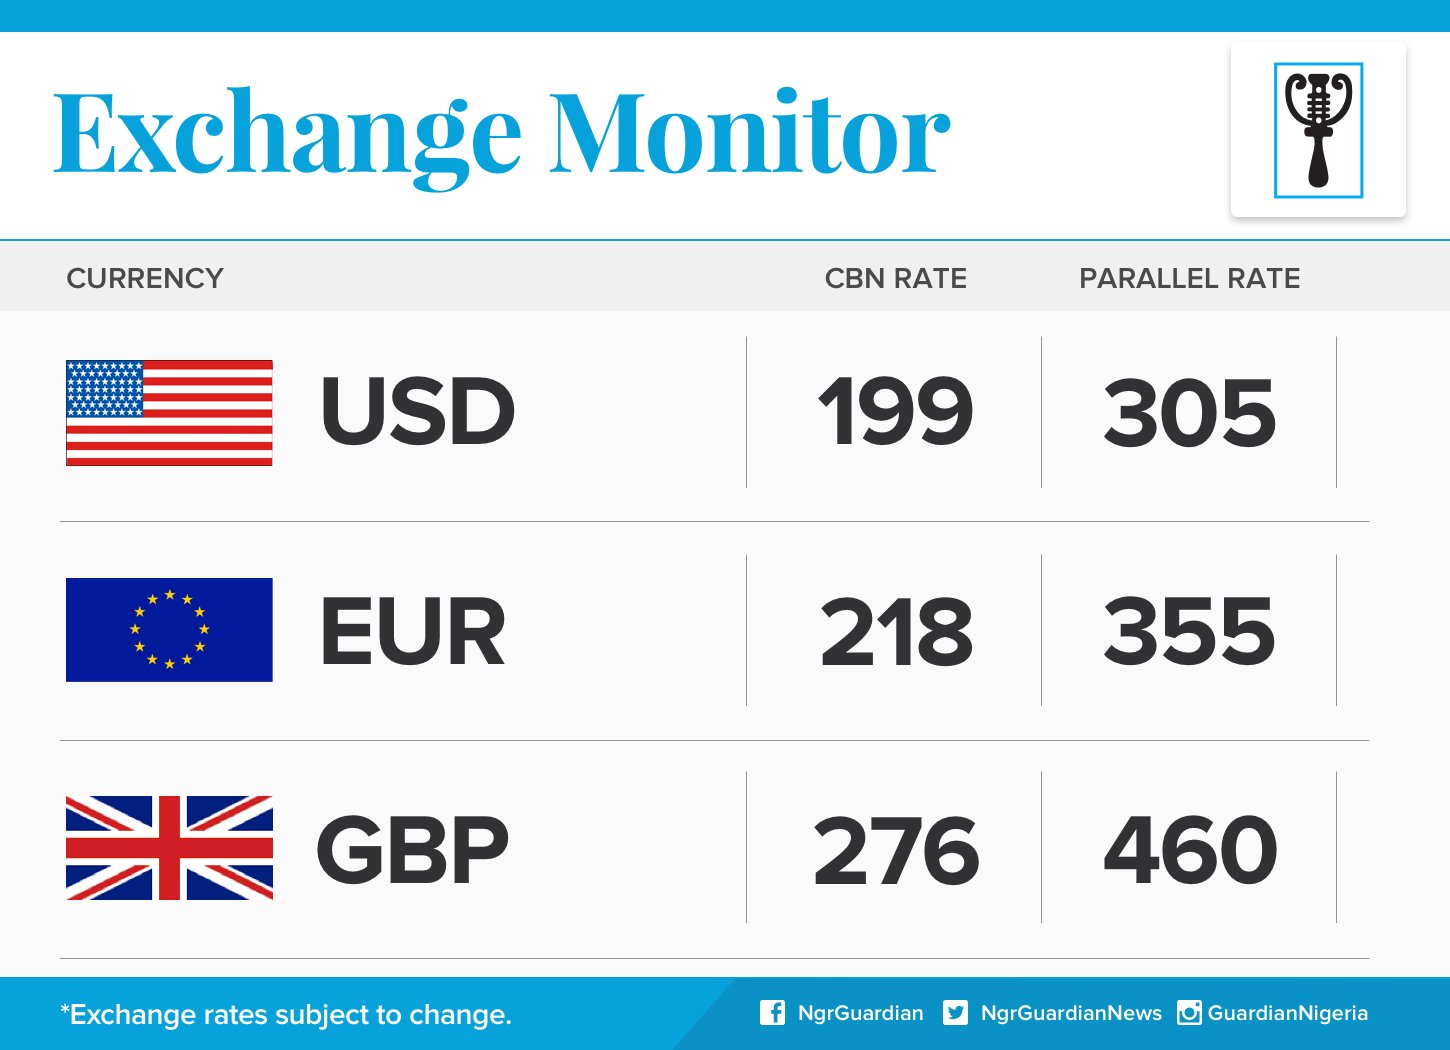 Dollar Exchange Rate For 29th Feb, 2016